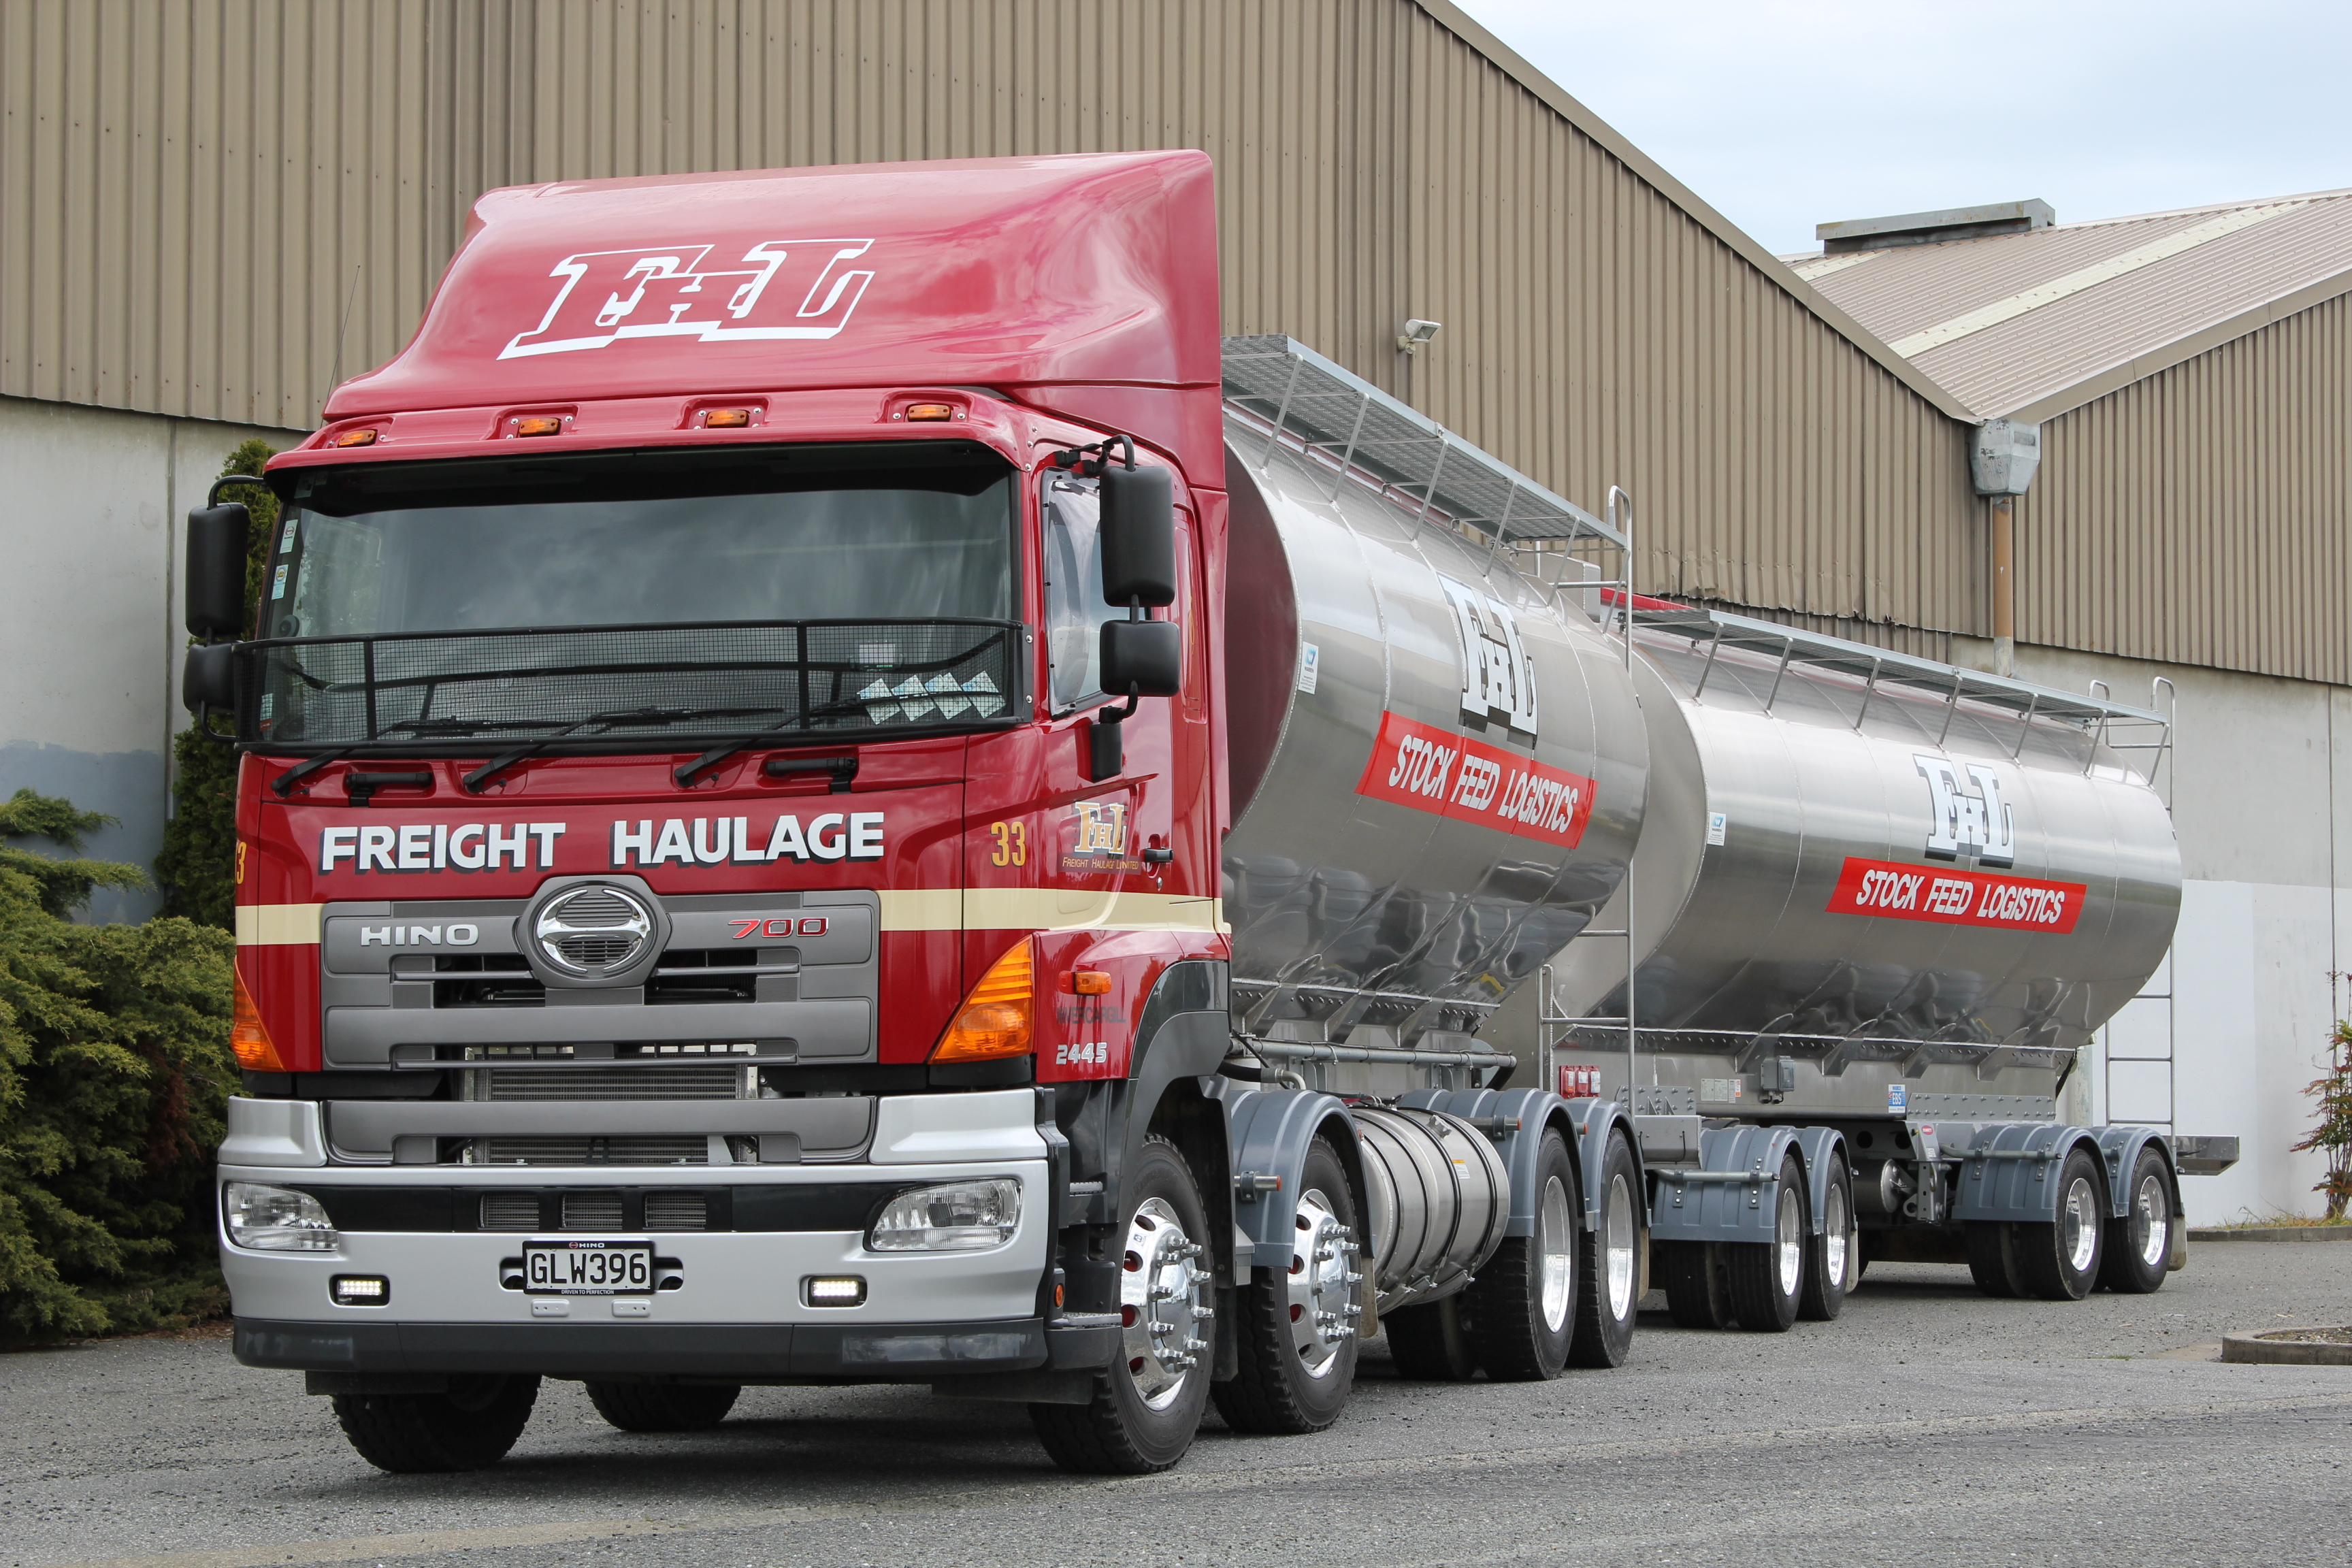 Freight Haulage - 700 Series FY1E 450hp